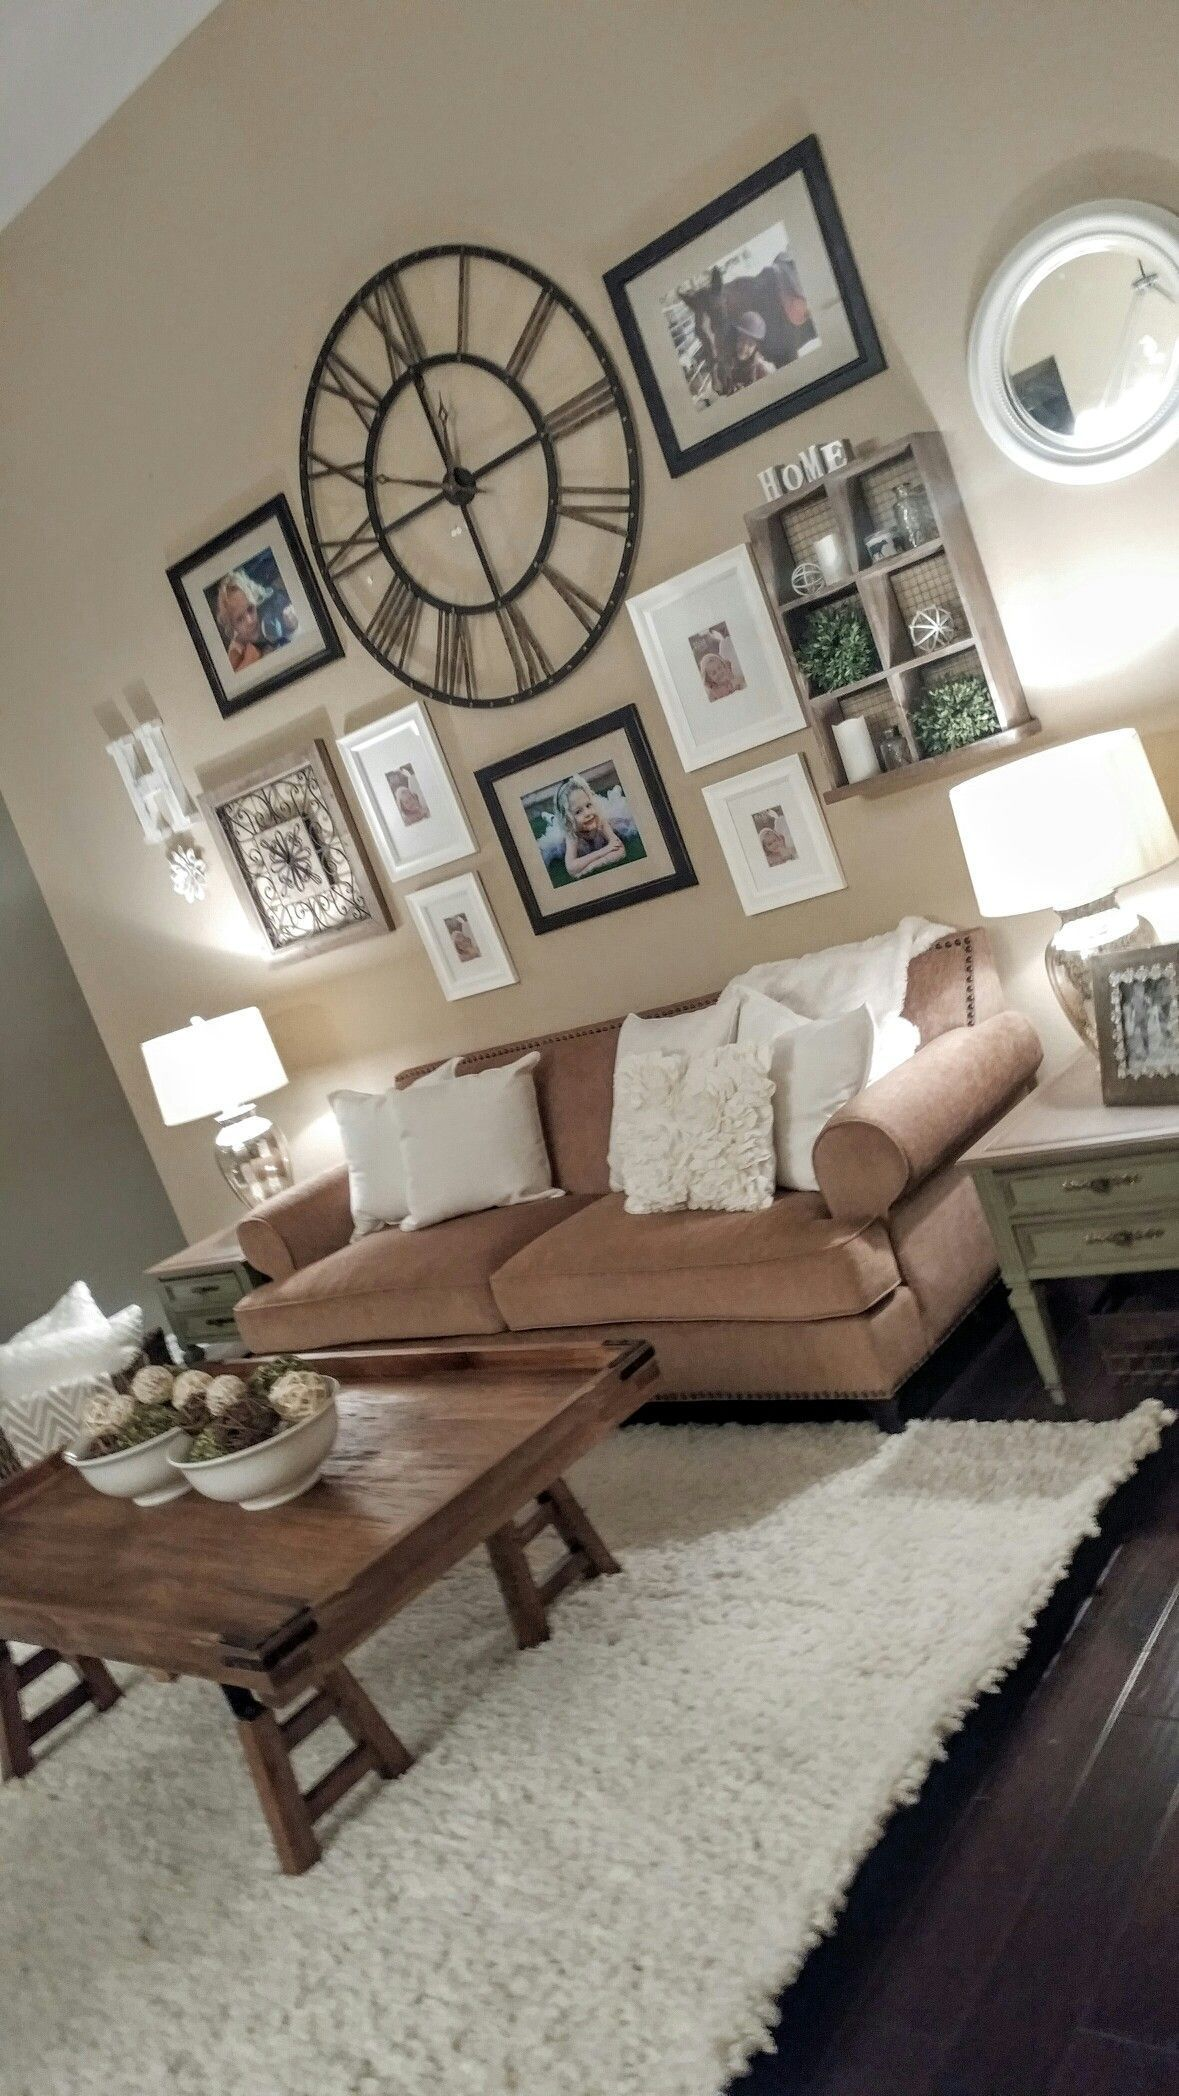 83+ Inspiring for Rustic Living Room Wall Decor Design images